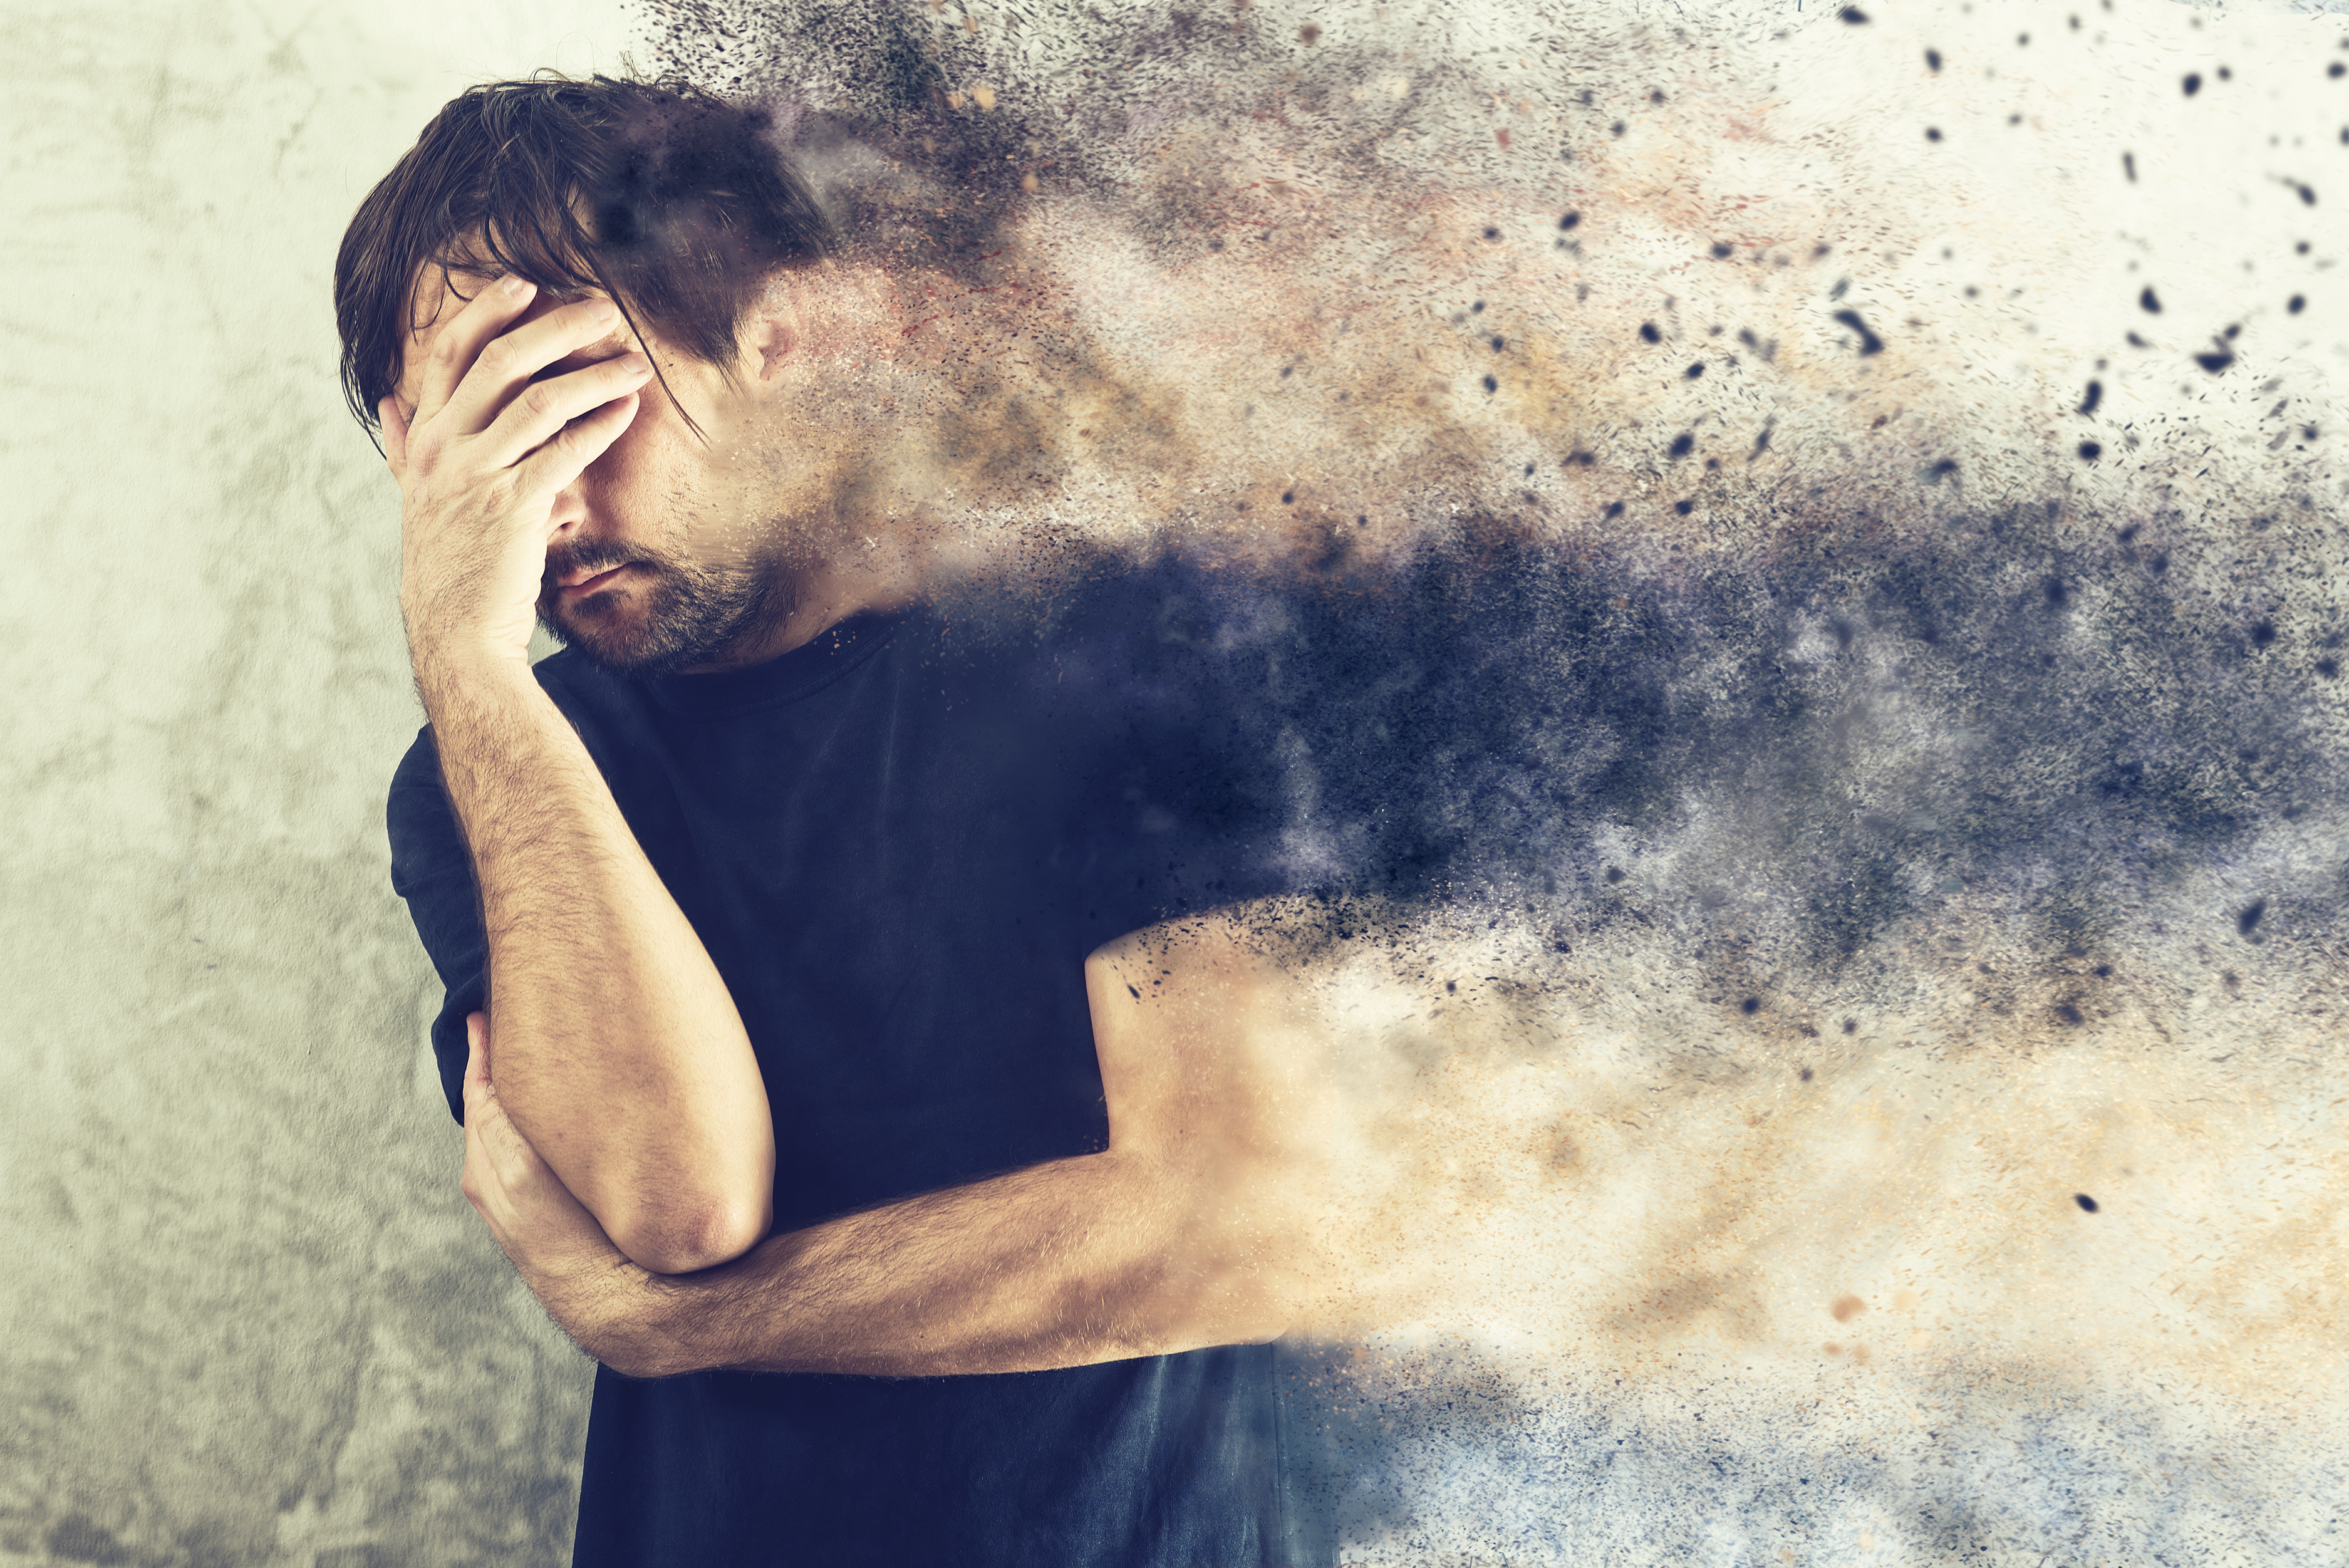 A Church Service struggling with anxiety | Mental Health and the Church